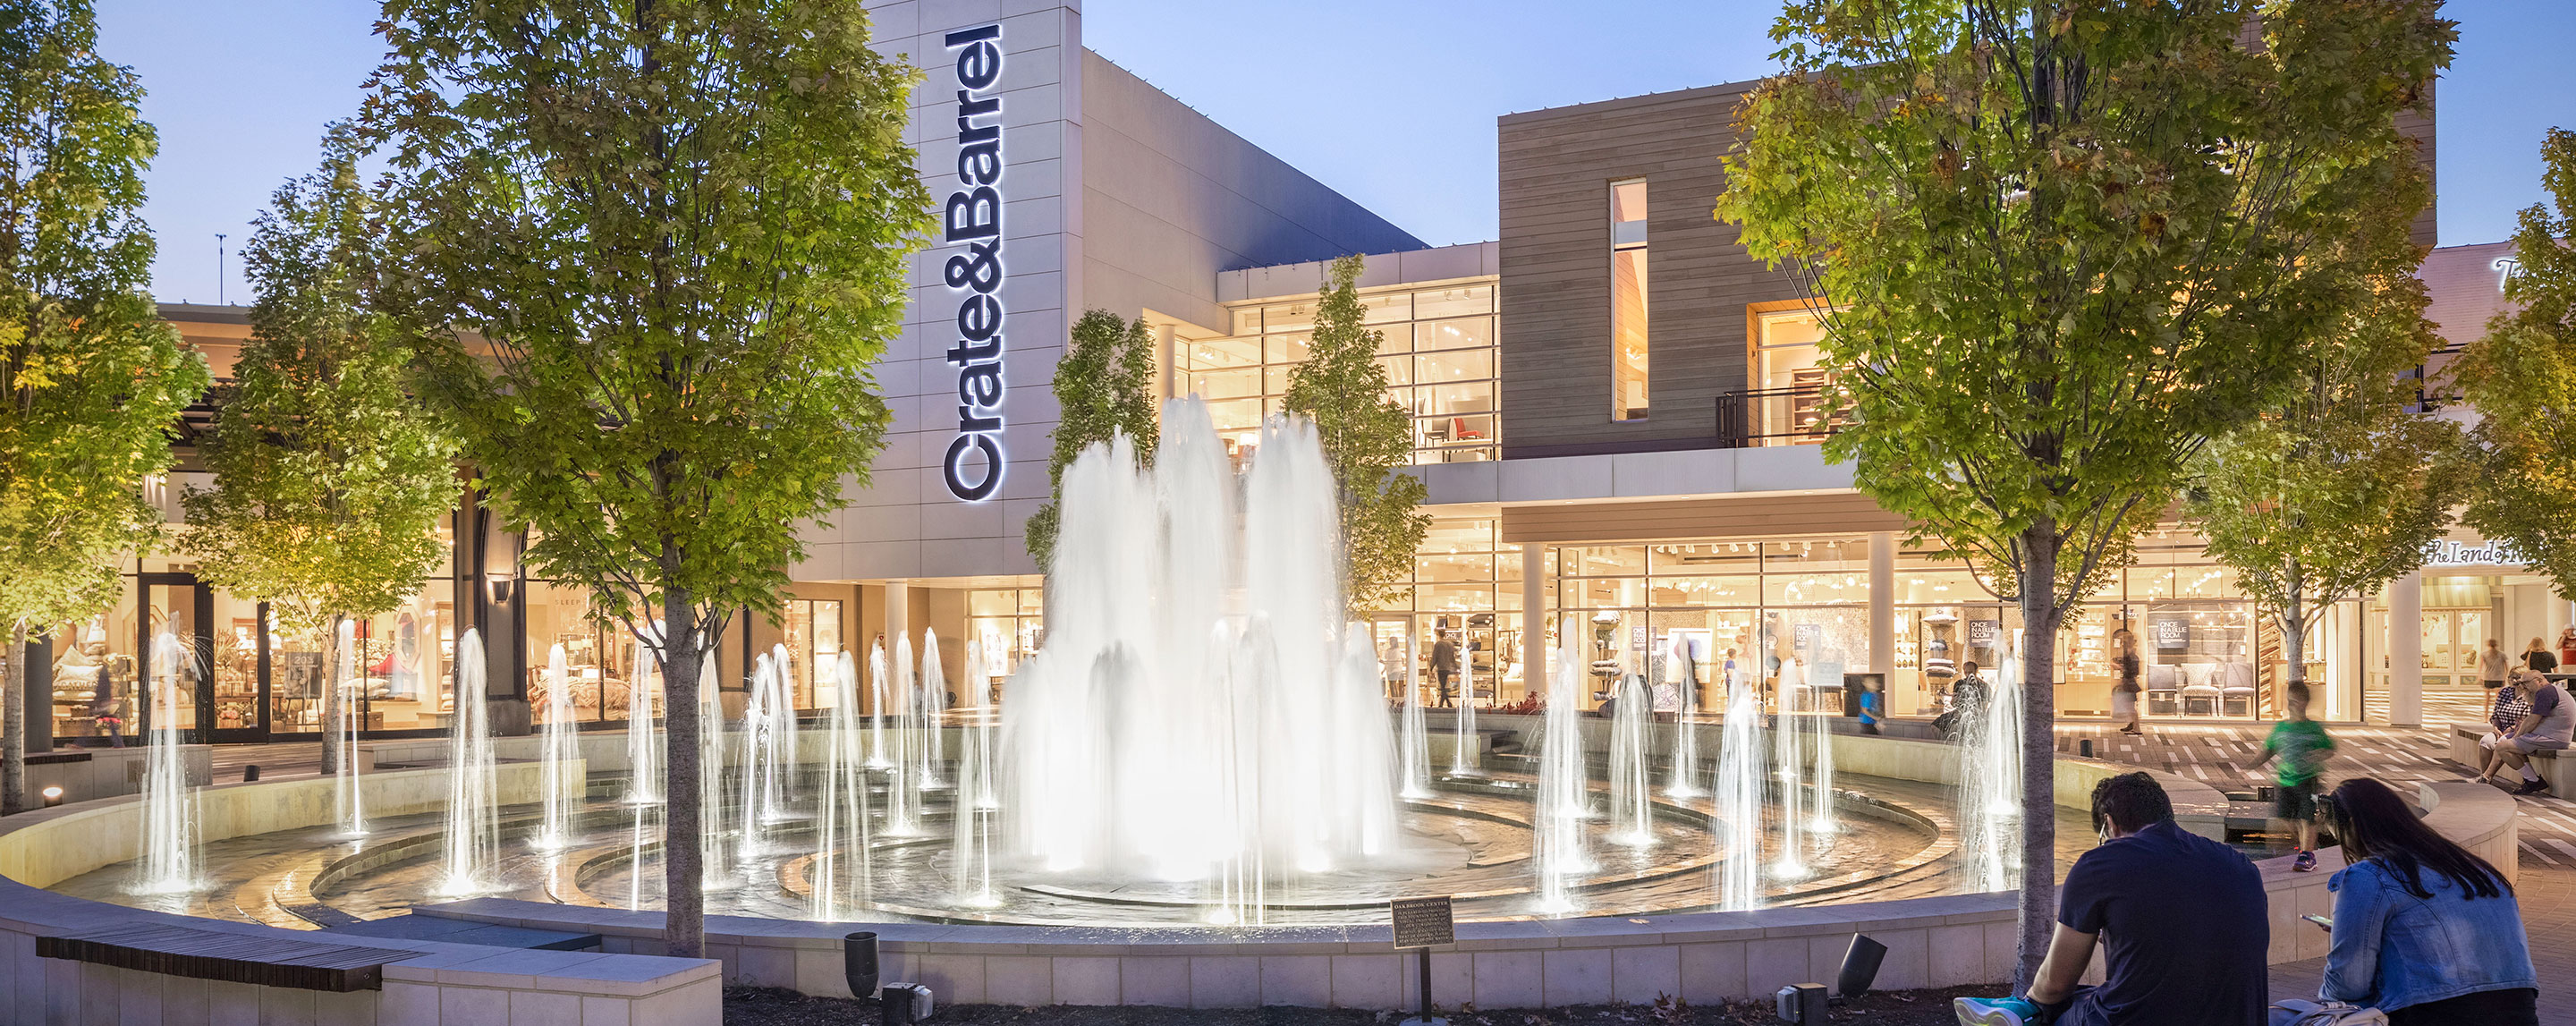 Outside of a Crate & Barrel at a GGP property, a glowing fountain is a good resting spot for shoppers.